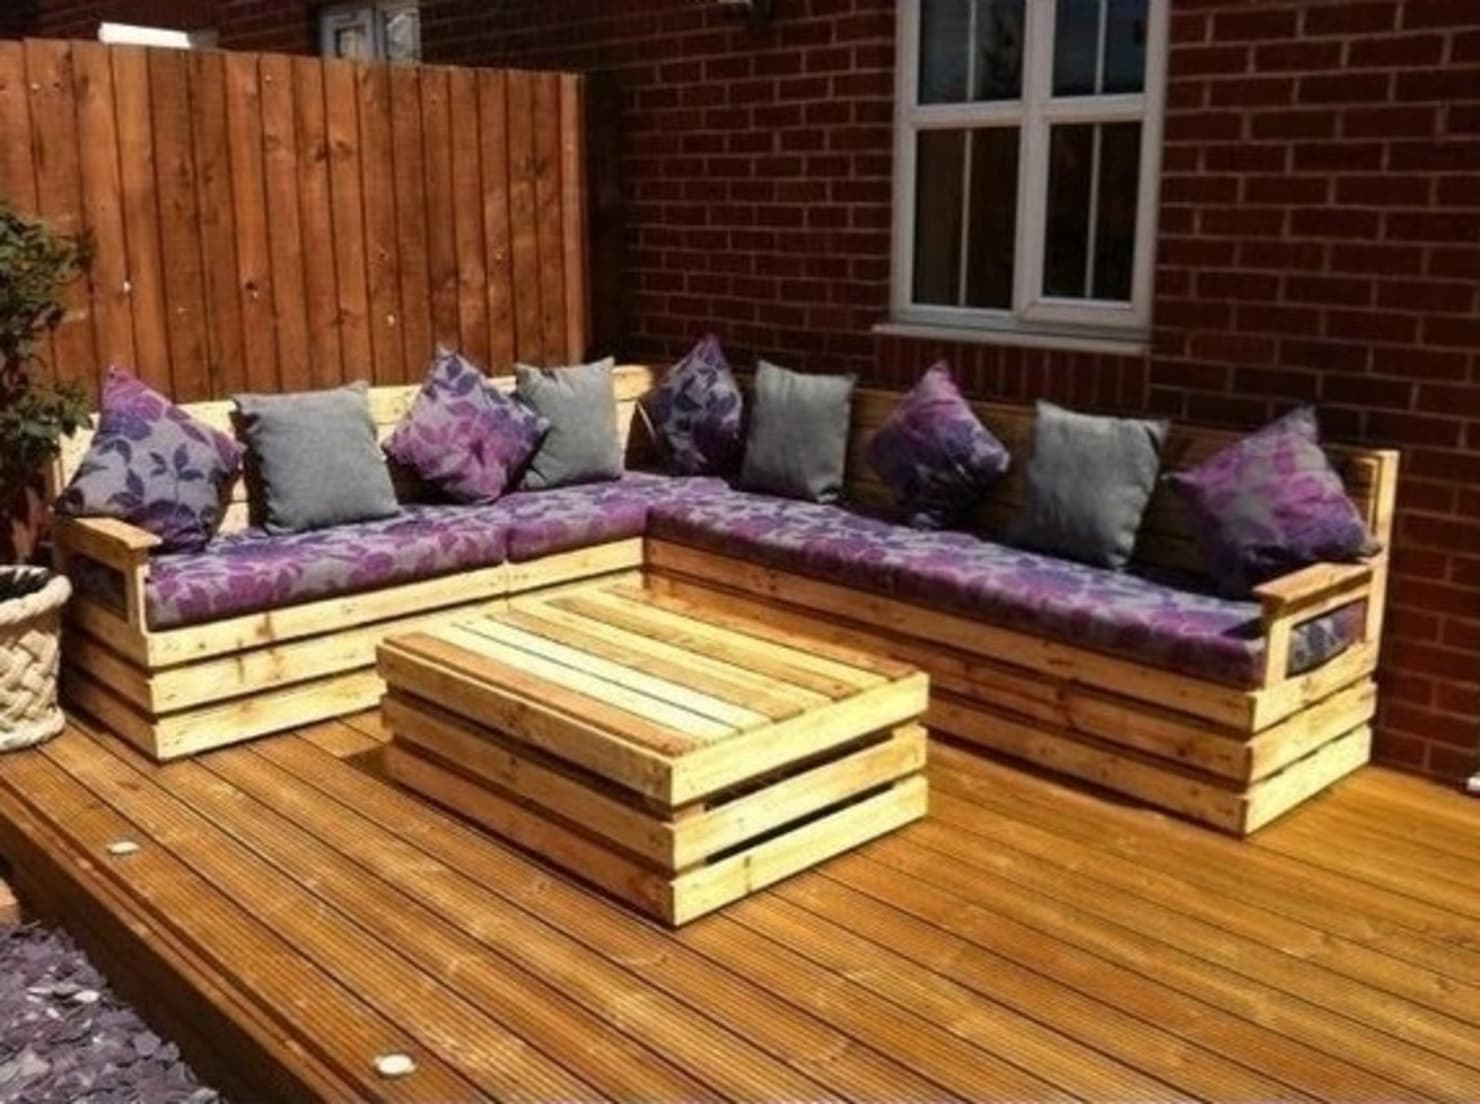 DIY: 14 cheap and easy ways to improve your garden or terrace